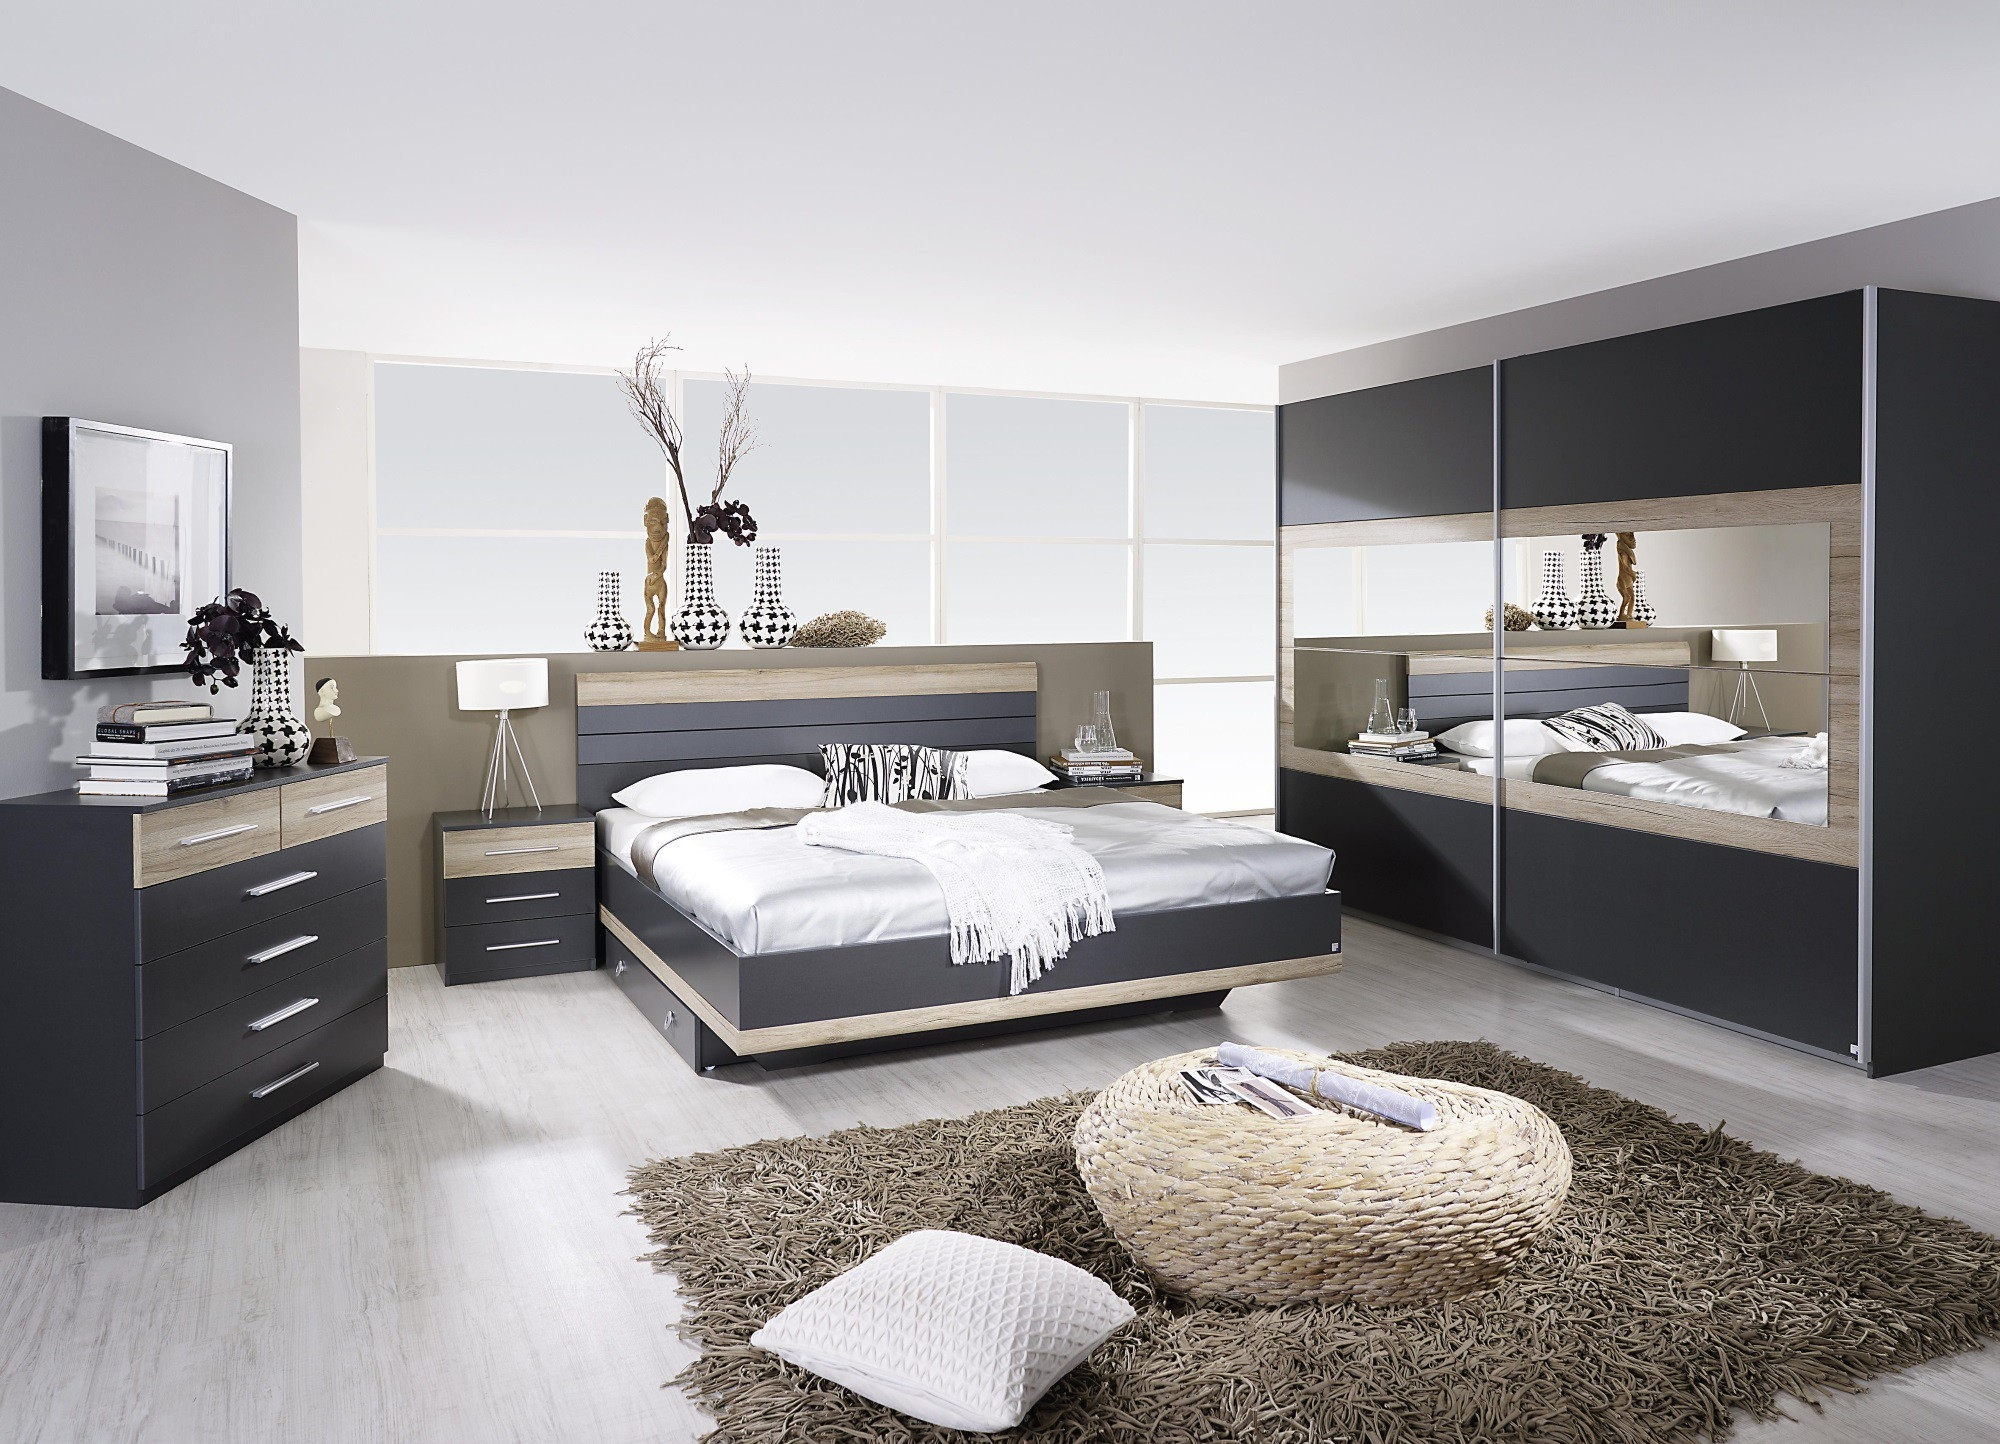 Chambre adulte compl te contemporaine gris ch ne clair for Chambre complete adulte japonaise